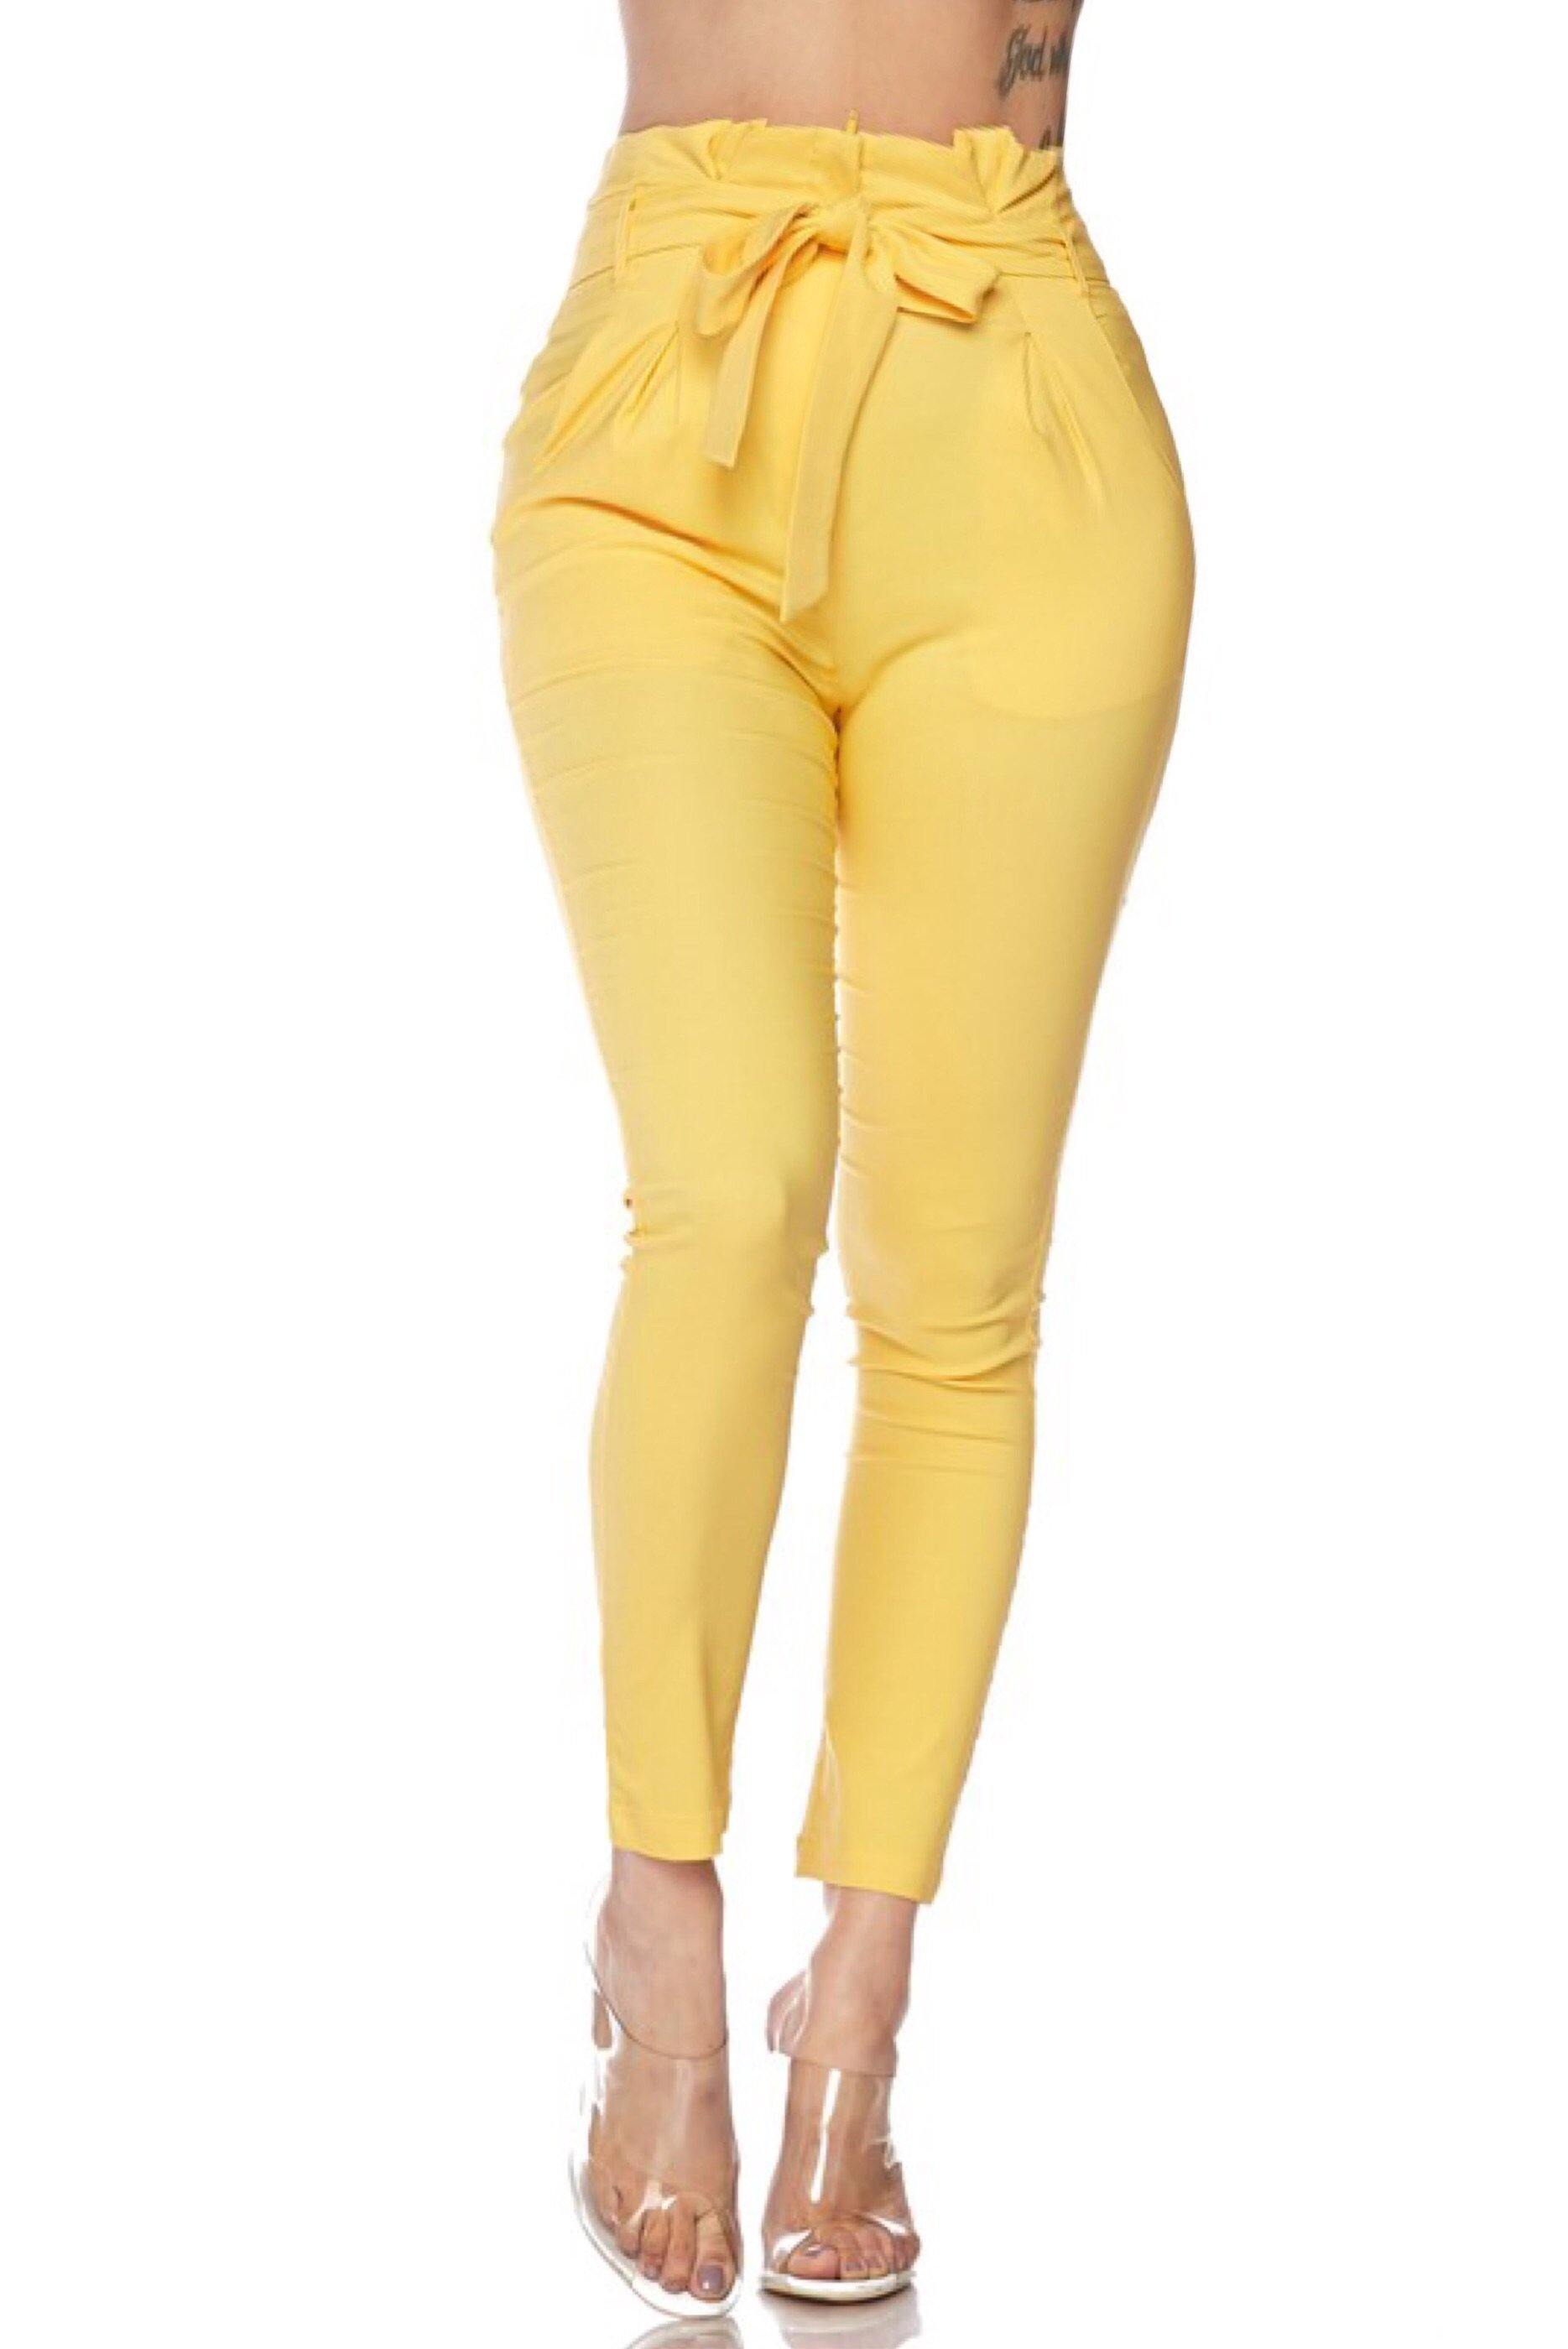 Besties forever High Rise Yellow Pants